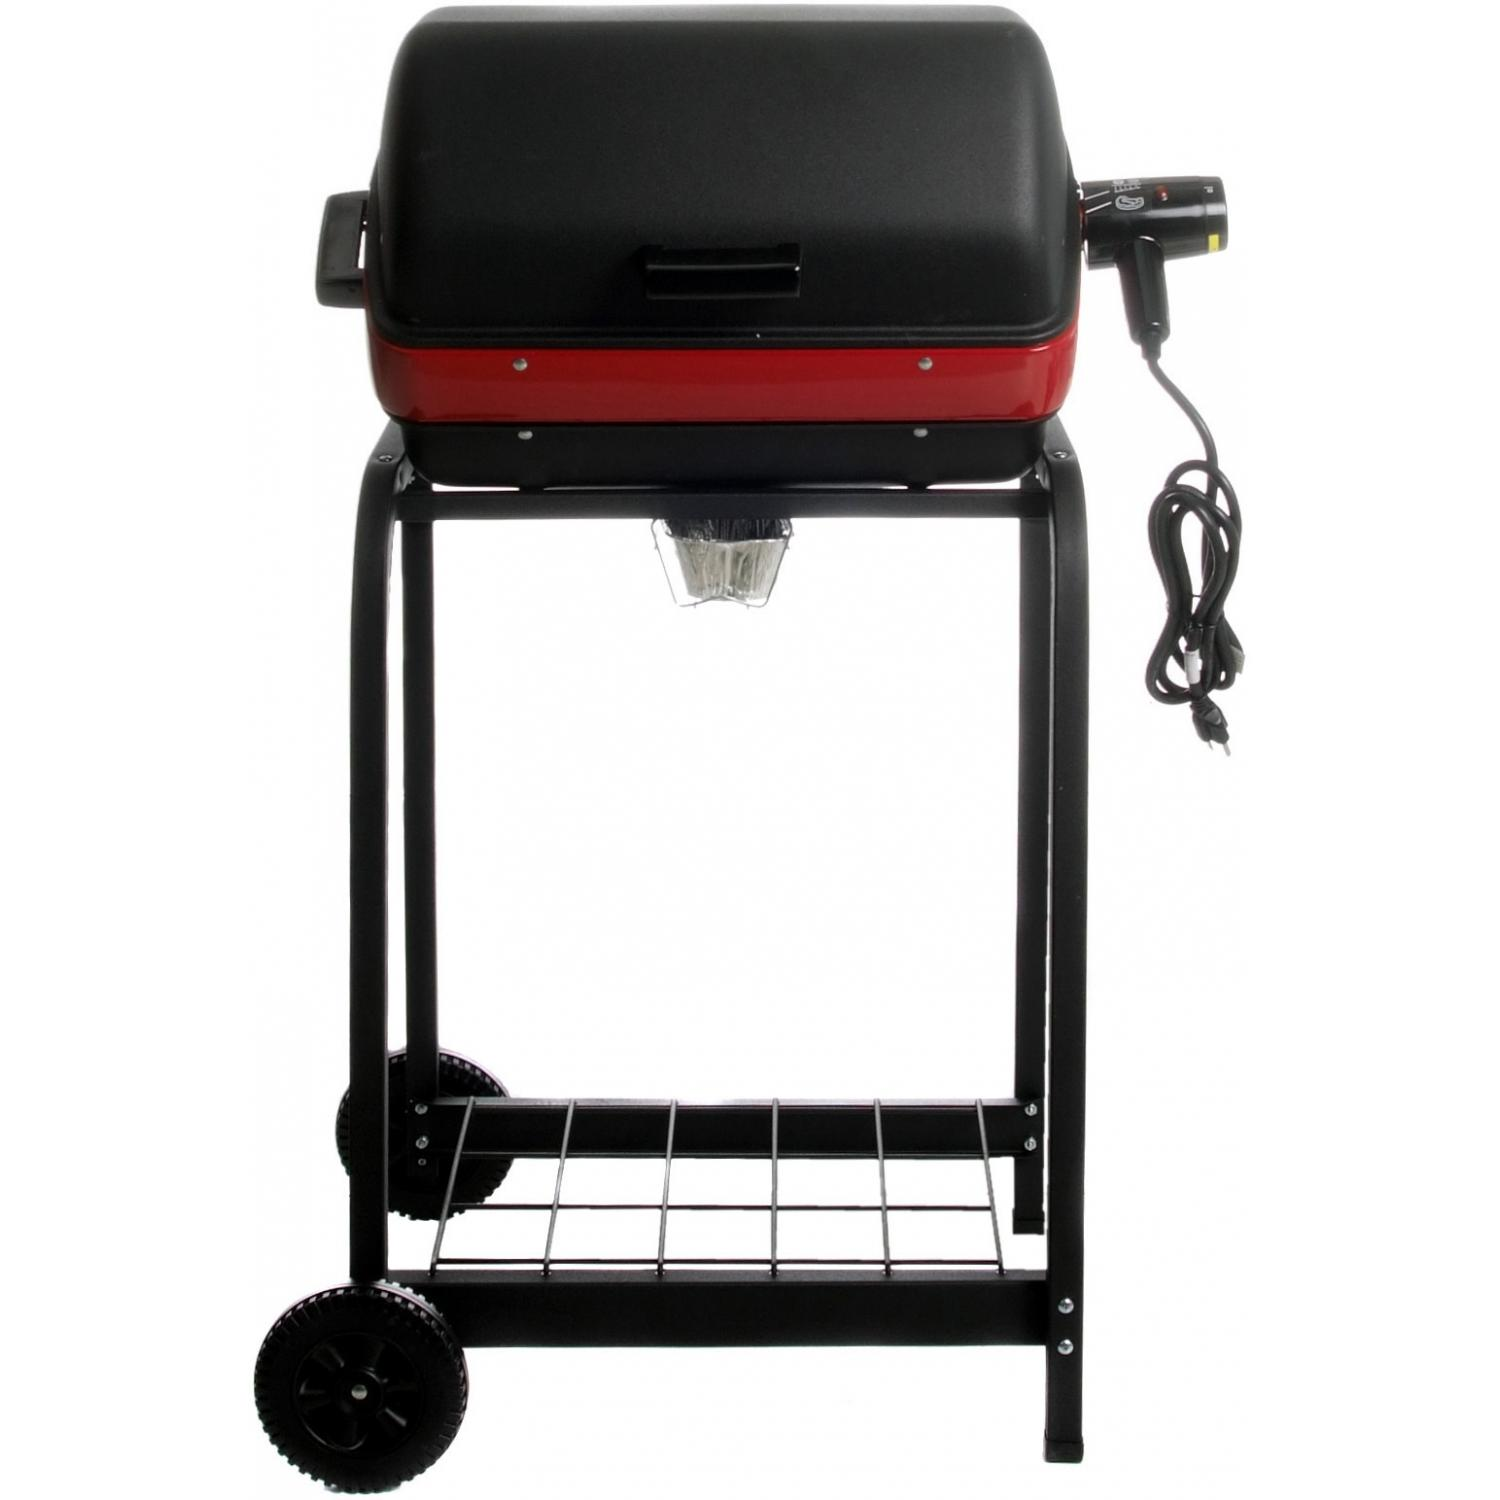 Meco Electric Grills - 9320 Electric BBQ Grill On Cart